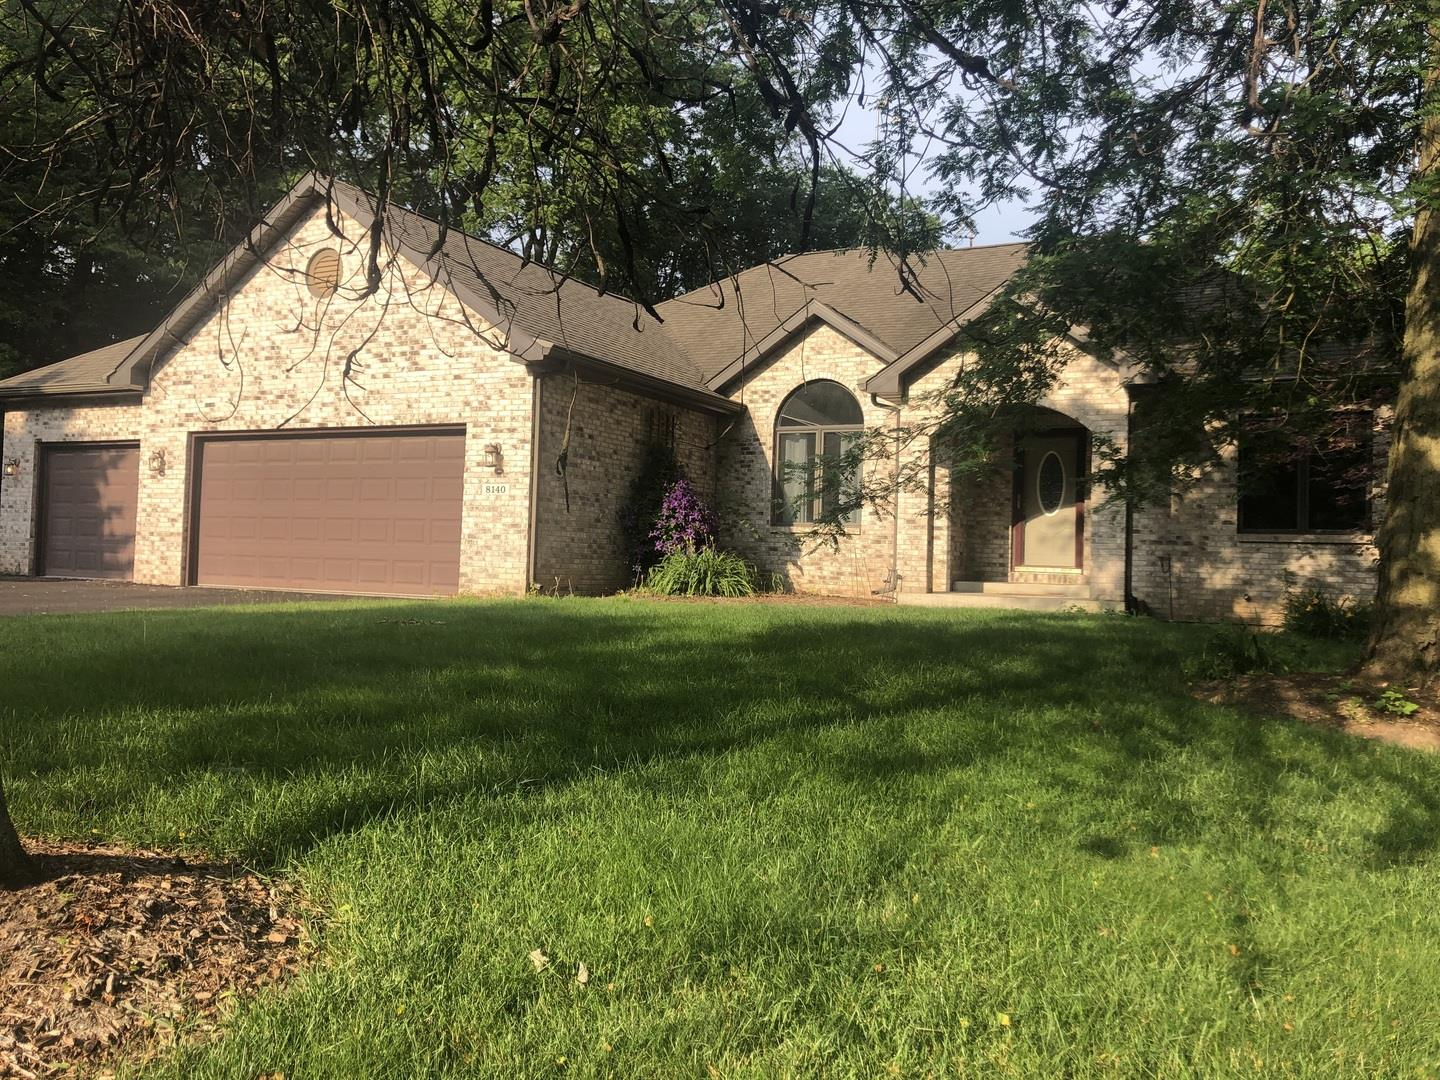 8140 Living Woods Drive, Rockford, IL 61109 - #: 10782744